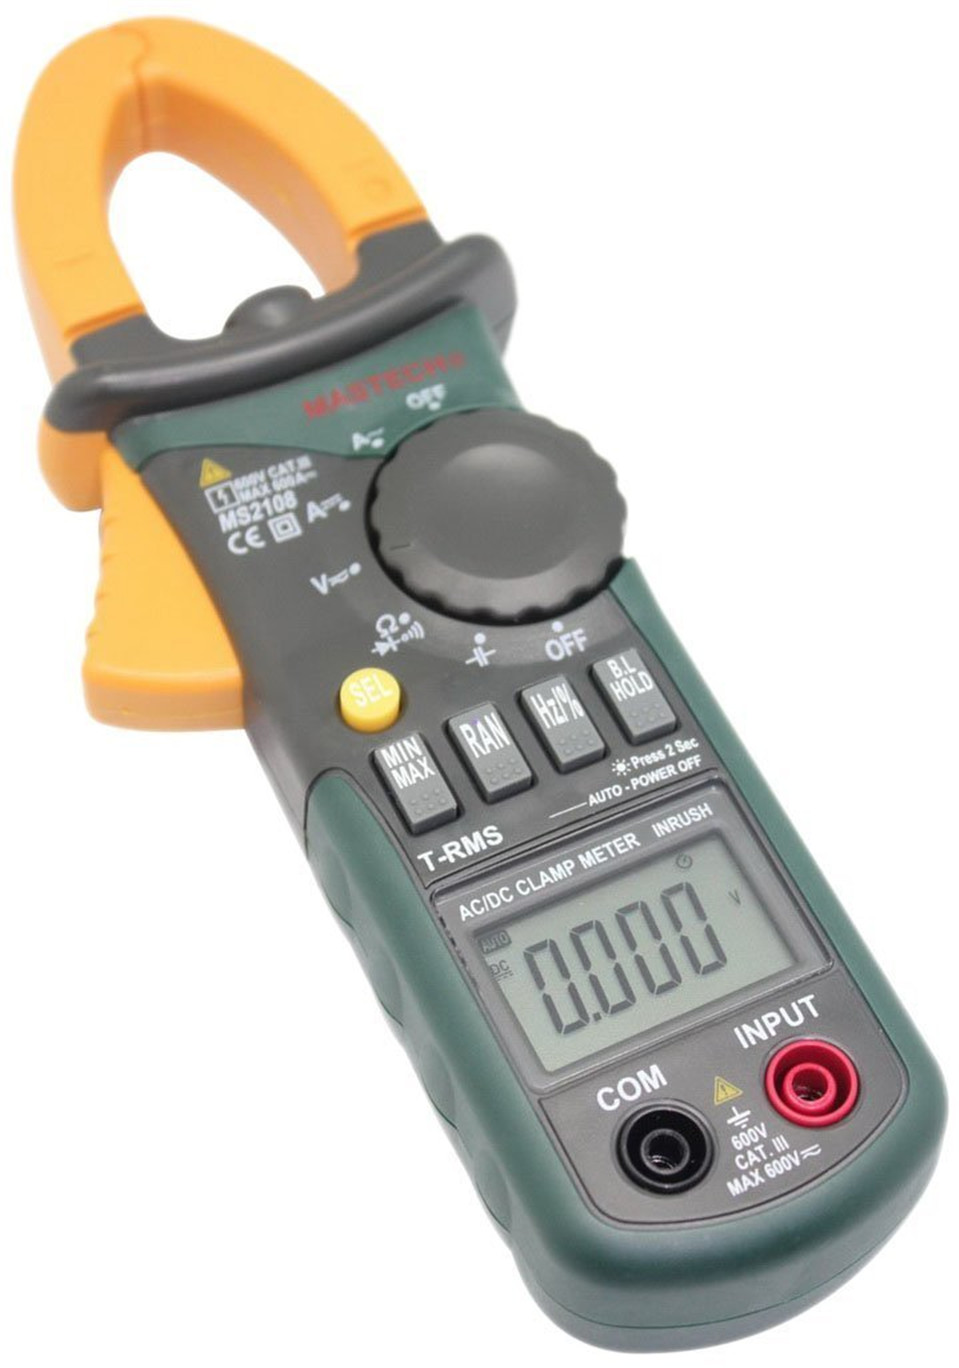 ФОТО 2017 New Mastech MS2108 Digital Clamp Meter True RMS LCD Multimeter AC DC Voltmeter Ammeter Ohm Herz. Duty Cycle Multi Tester